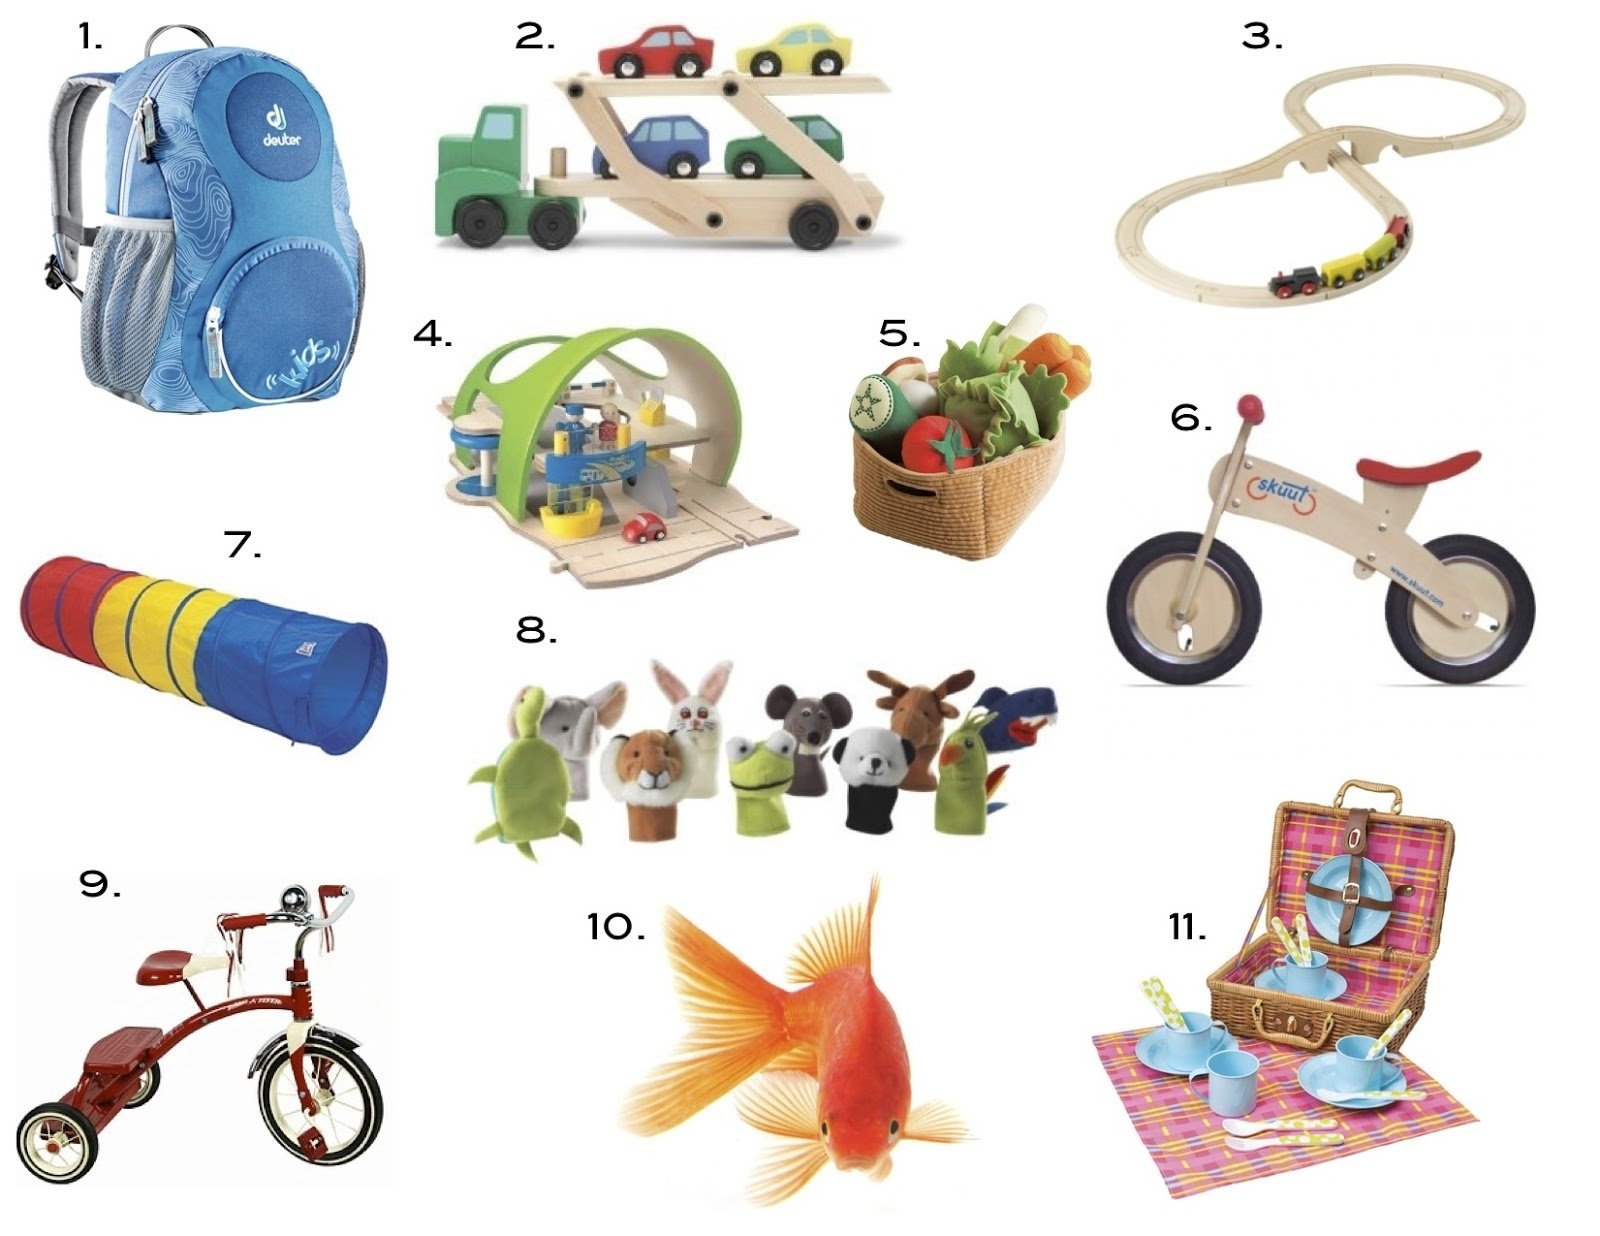 10 Pretty Christmas Gift Ideas For 2 Year Old Boy